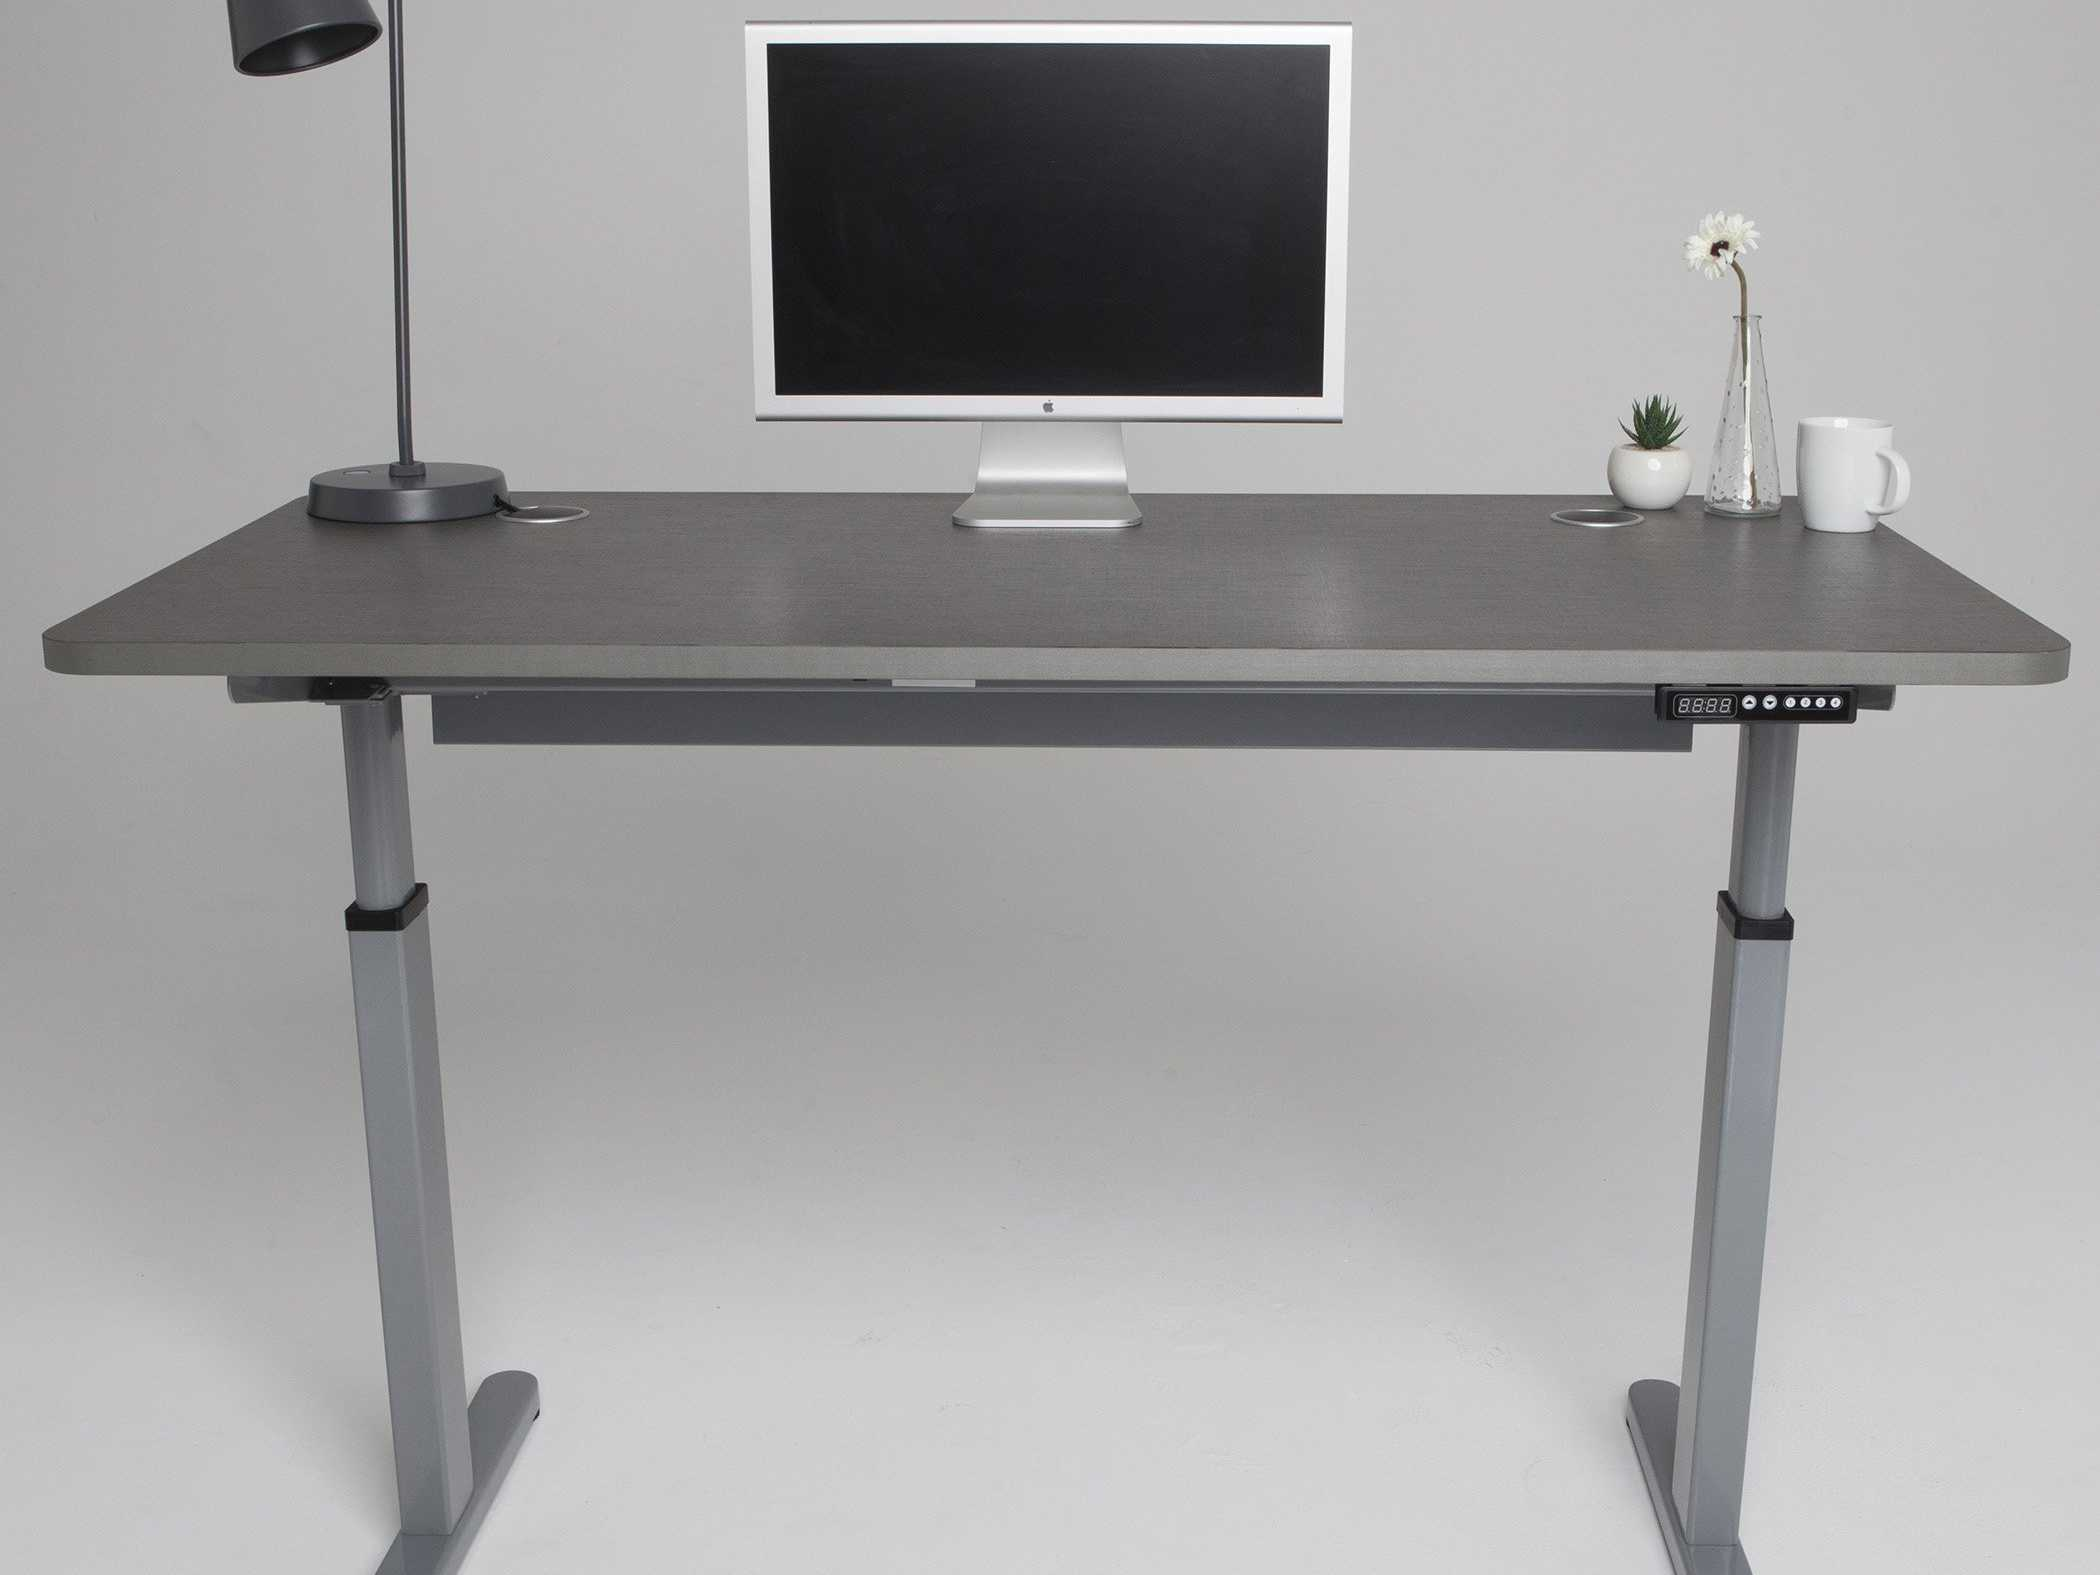 standing desk in grey simple grey standing desk minimalist grey standing desk grey-theme standing desk grey standing desk office grey standing desk for office grey standing desk for home office beautiful table lamp standing desk with white decora